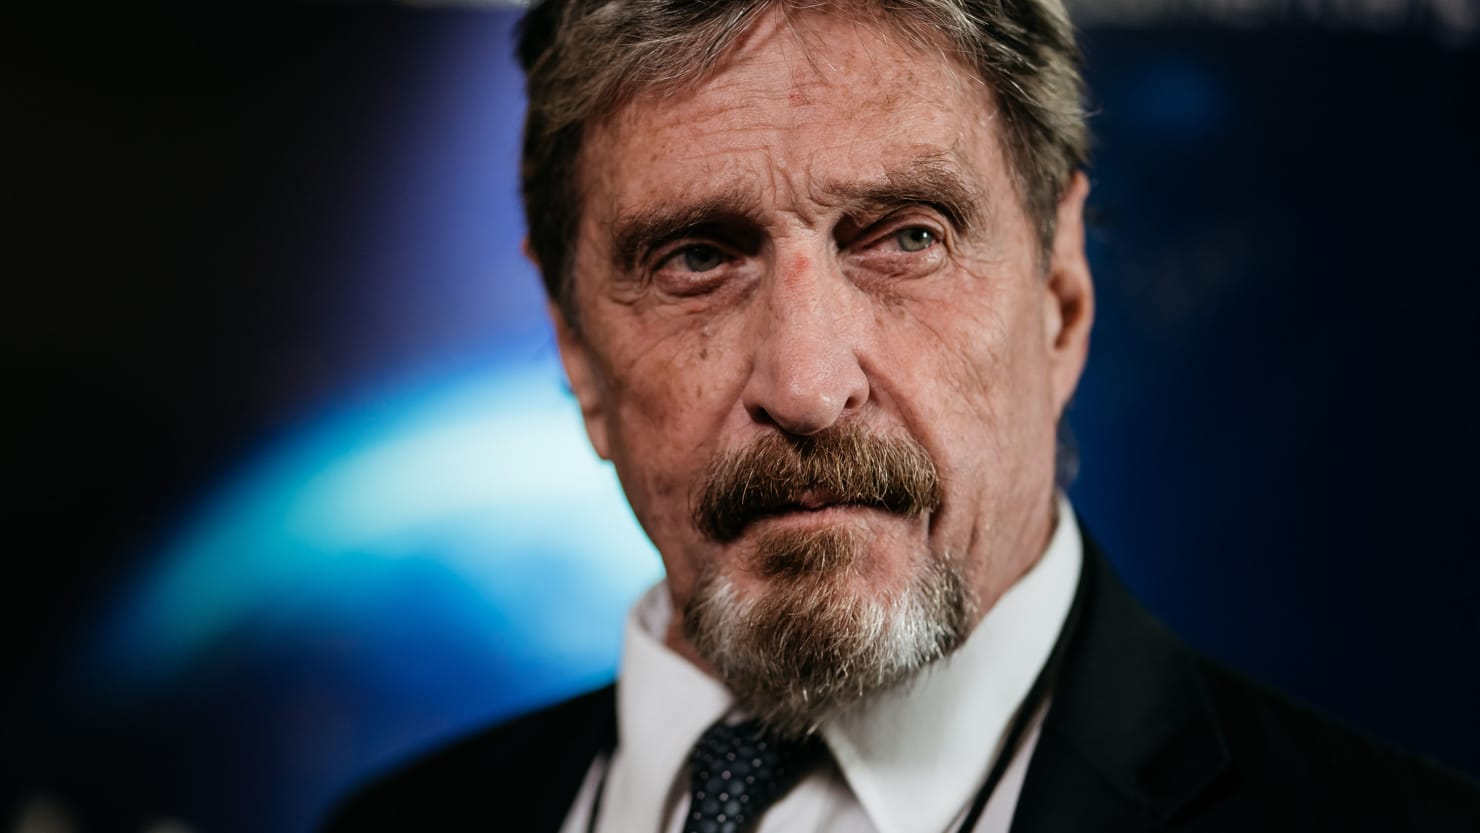 Eccentric Antivirus Tycoon John McAfee Accused of Making Millions in Illegal Crypto Schemes